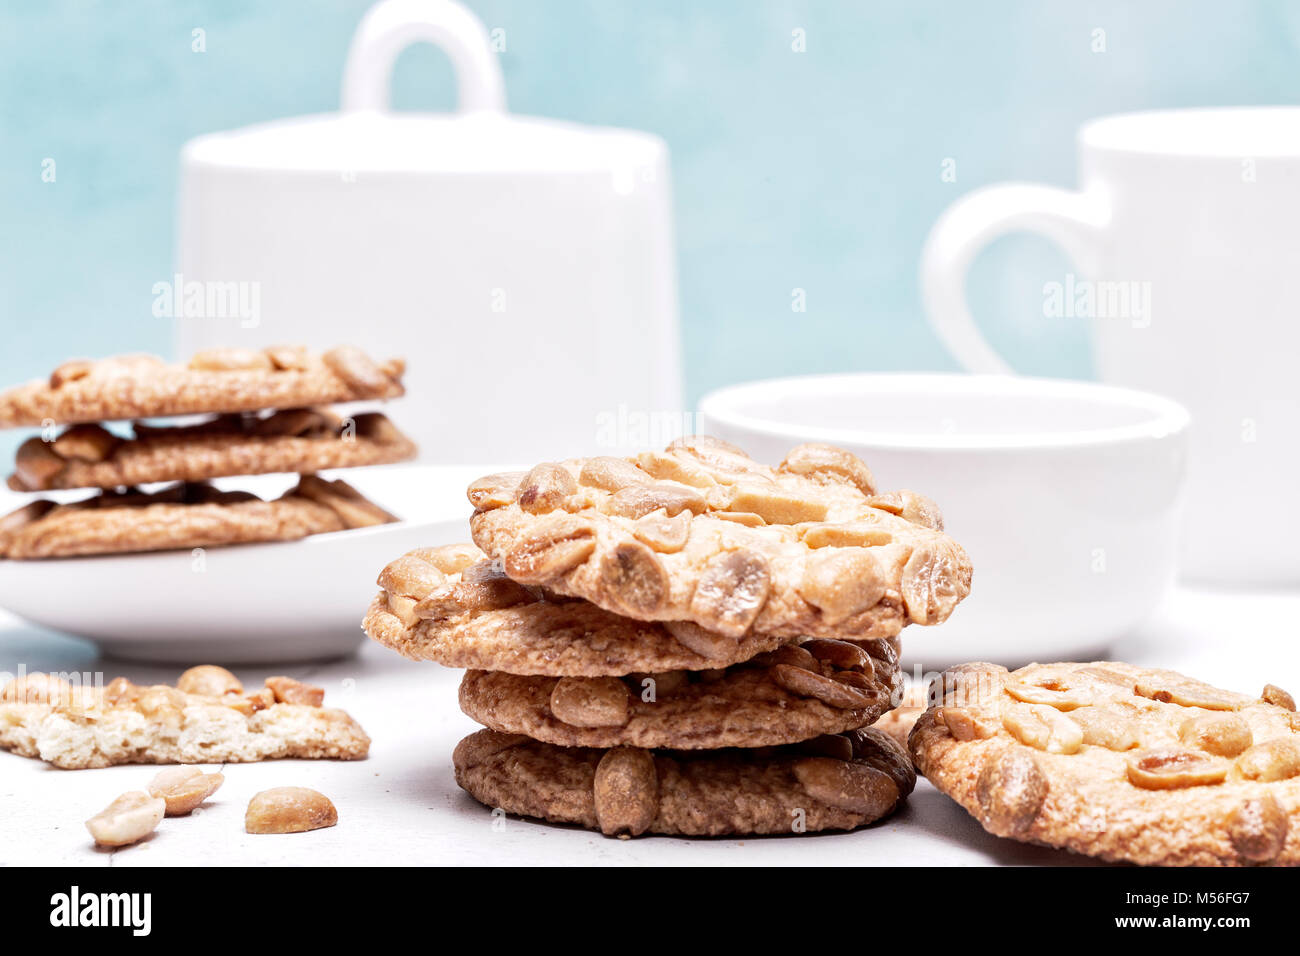 Peanut cookies in a light blue and white kitchen setting - Stock Image